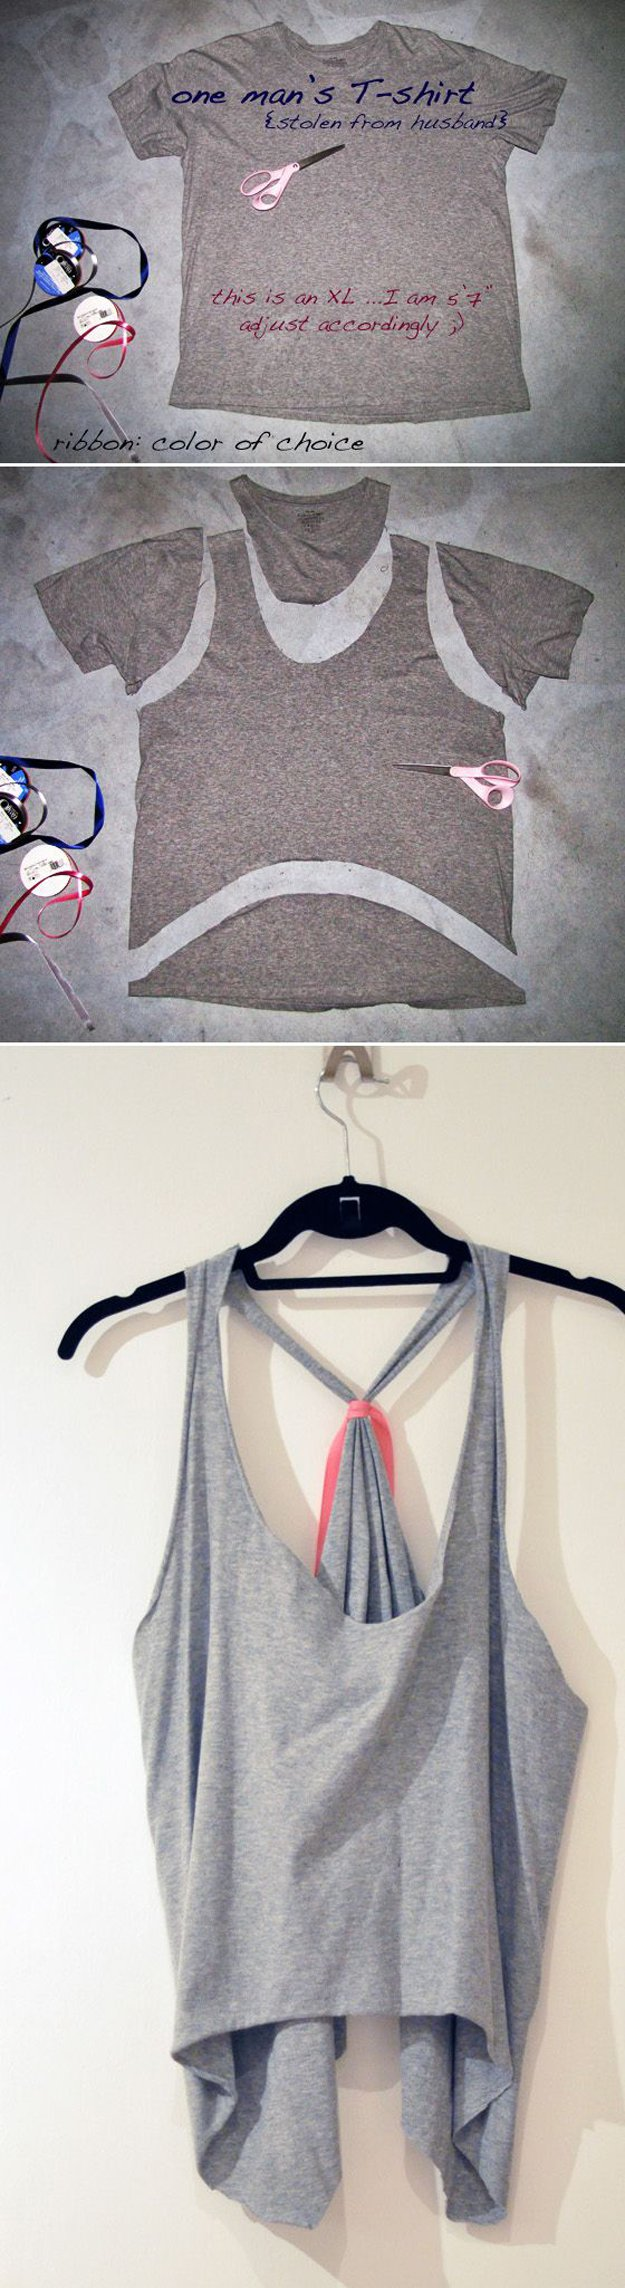 Easy Cut Out Tops for Women | diyready.com/diy-clothes-sewing-blouses-tutorial/